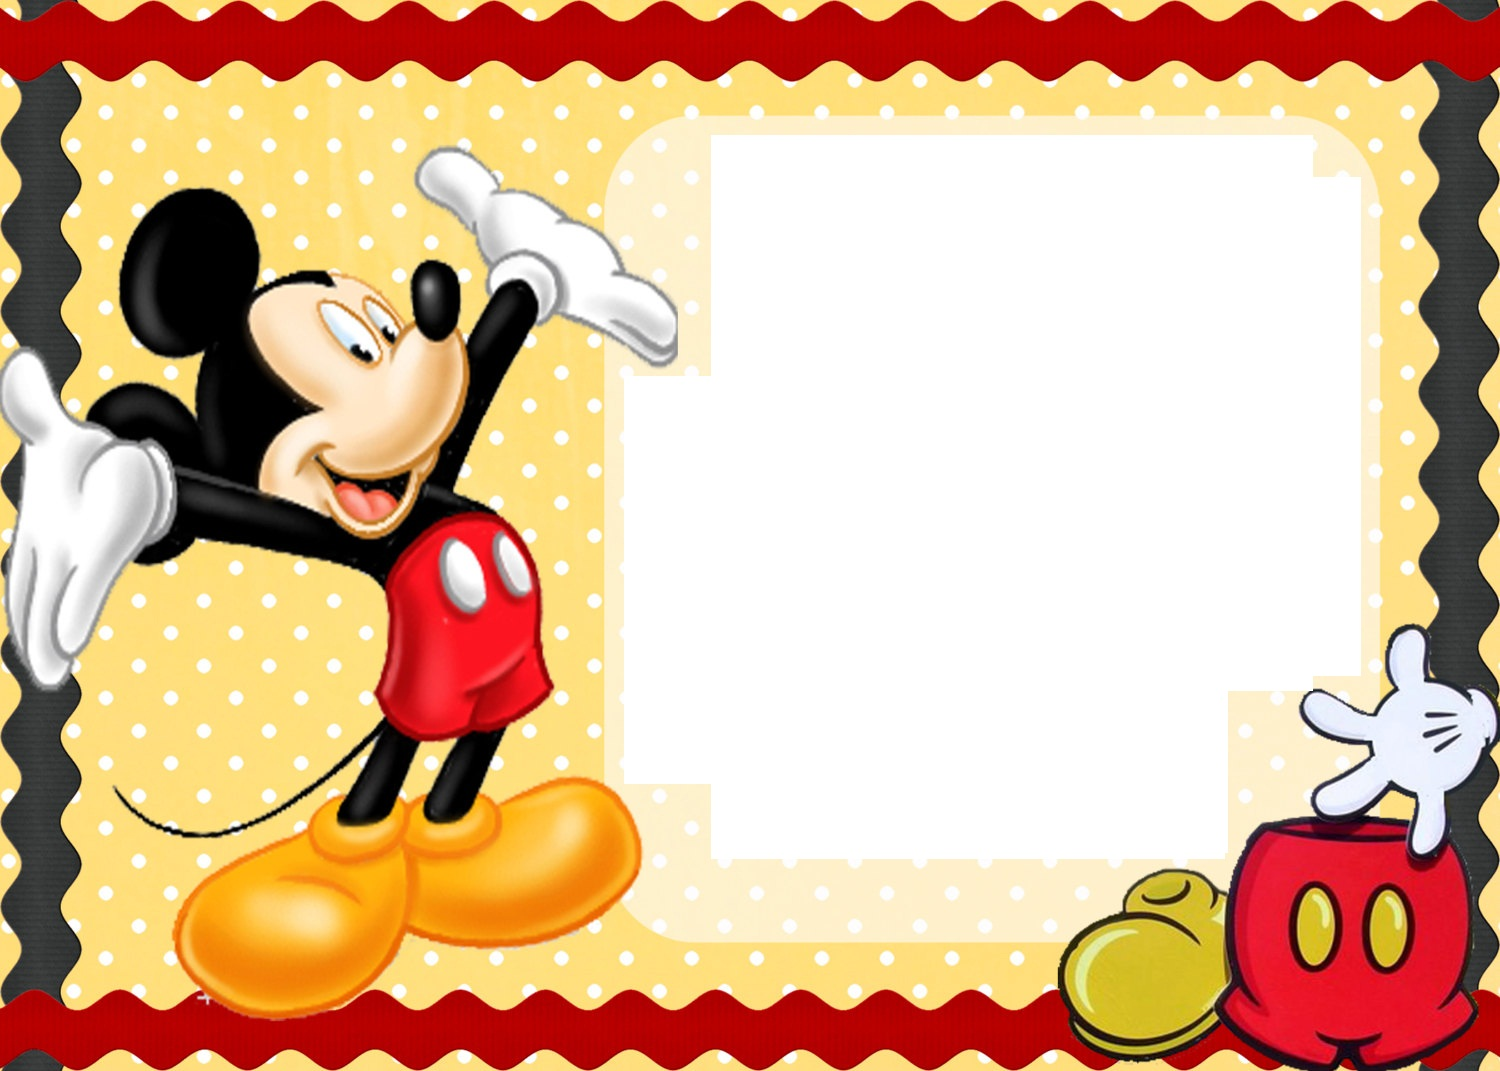 Mickey Mouse Frame Wallpapers High Quality | Download Free